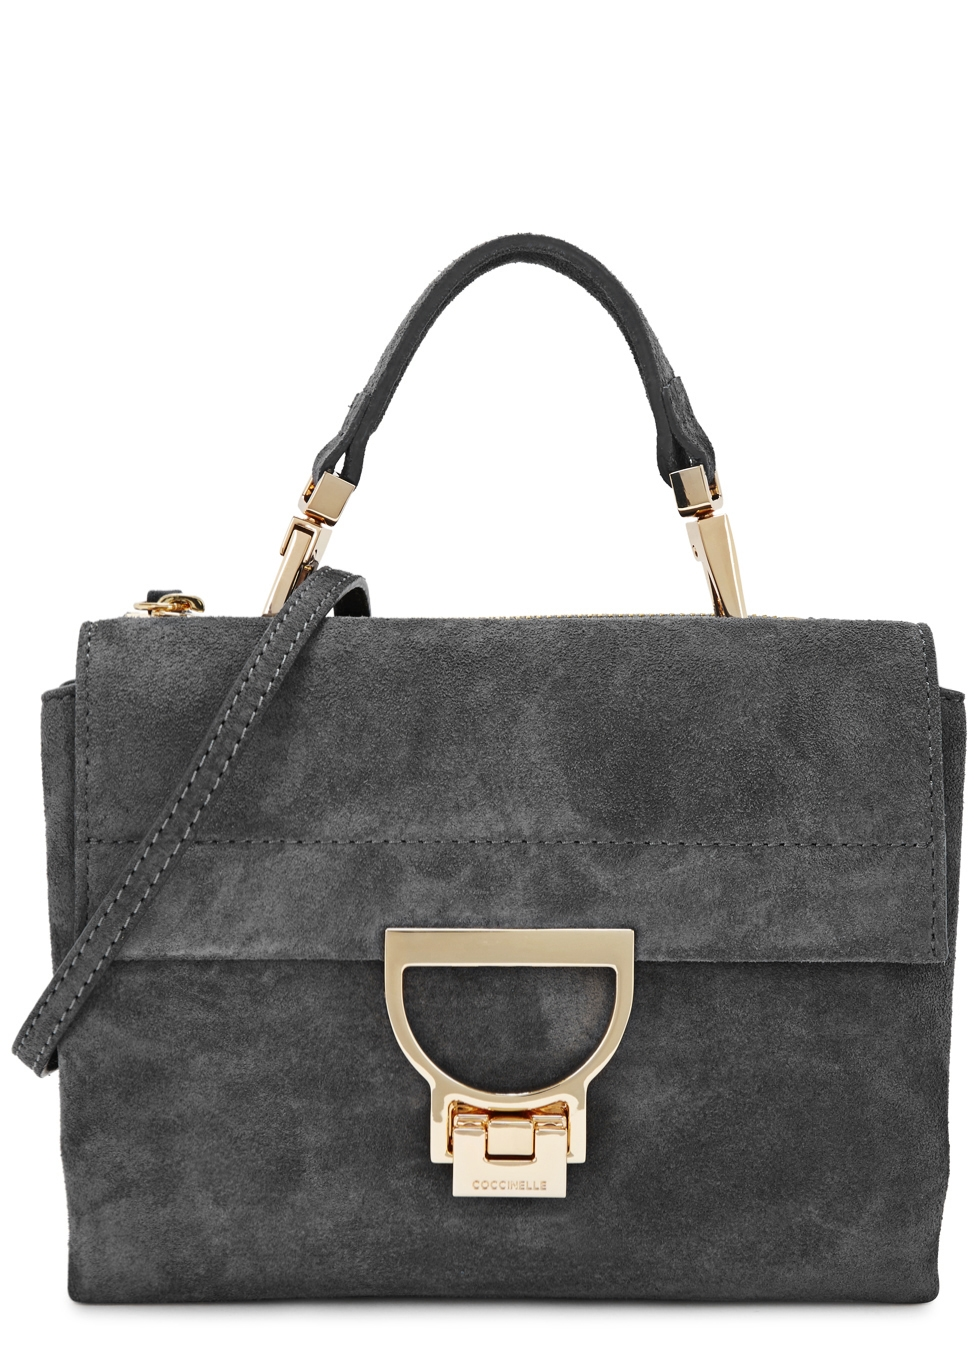 COCCINELLE ARLETTIS GREY SUEDE CROSS-BODY BAG